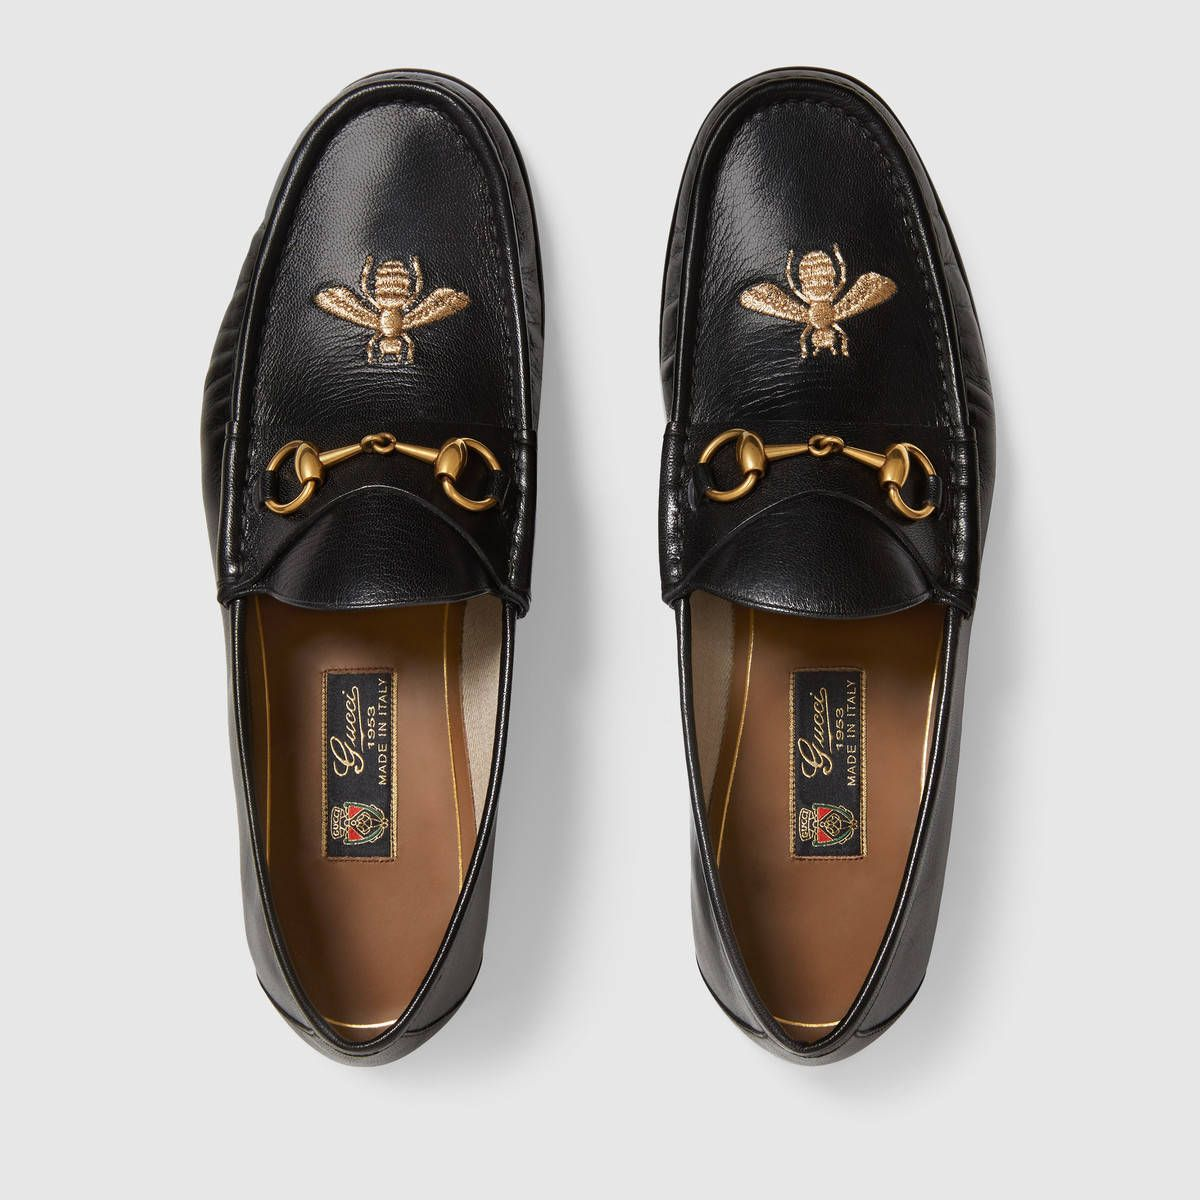 5829c993322 Gucci Leather loafer with bee